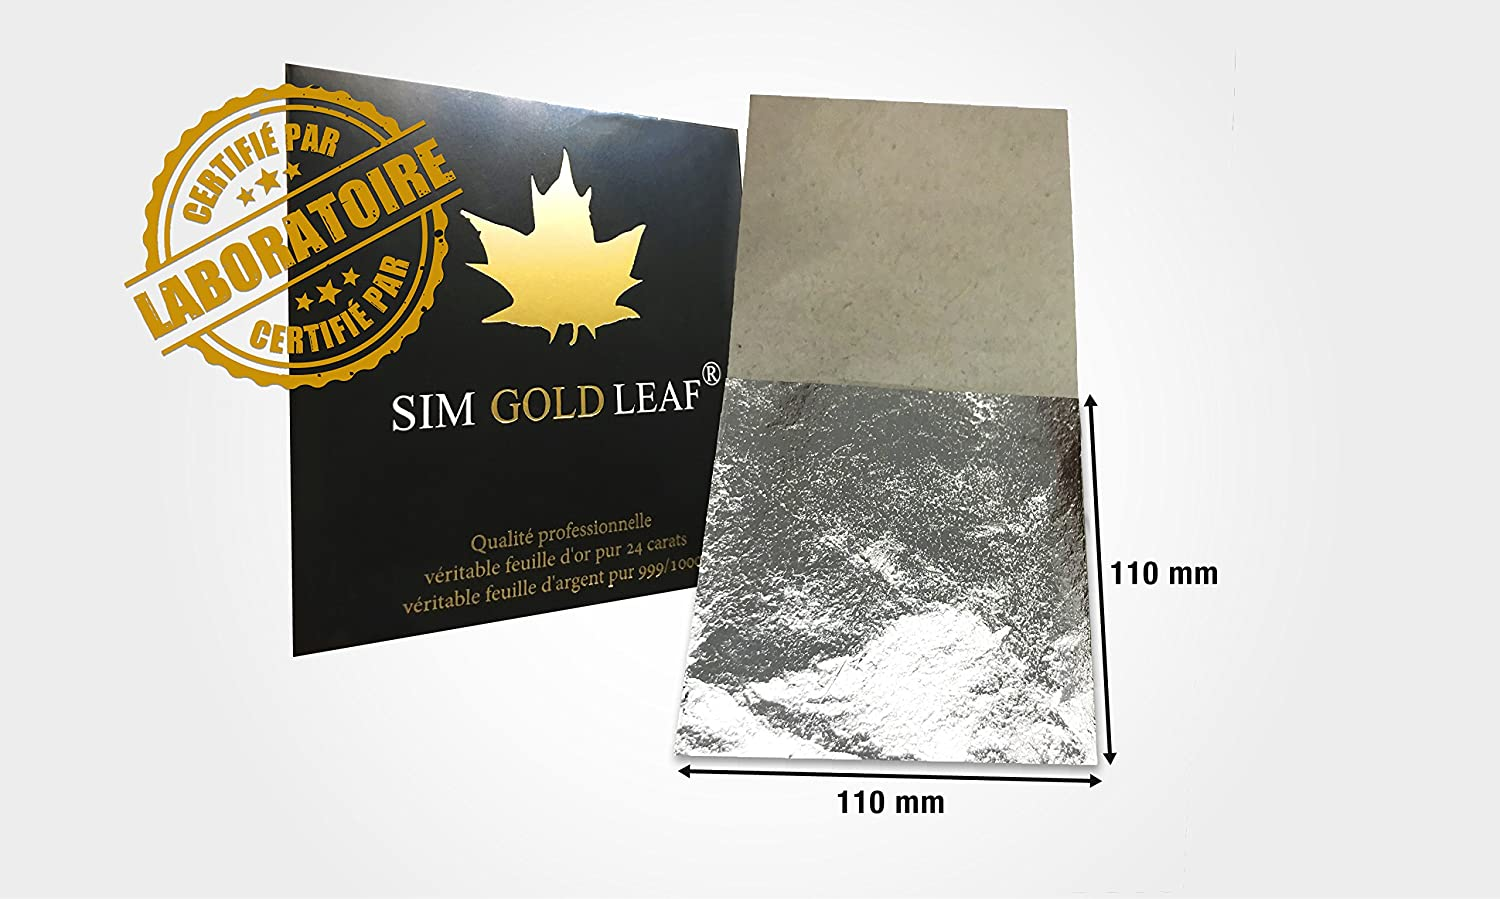 sim gold leaf Professional Quality Genuine EDIBLE Silver Leaf Sheets, 25 Sheets, Super Large 4-2/5 inches (Loose Leaf/InterLeaf Sheets) sim depot 25fa110